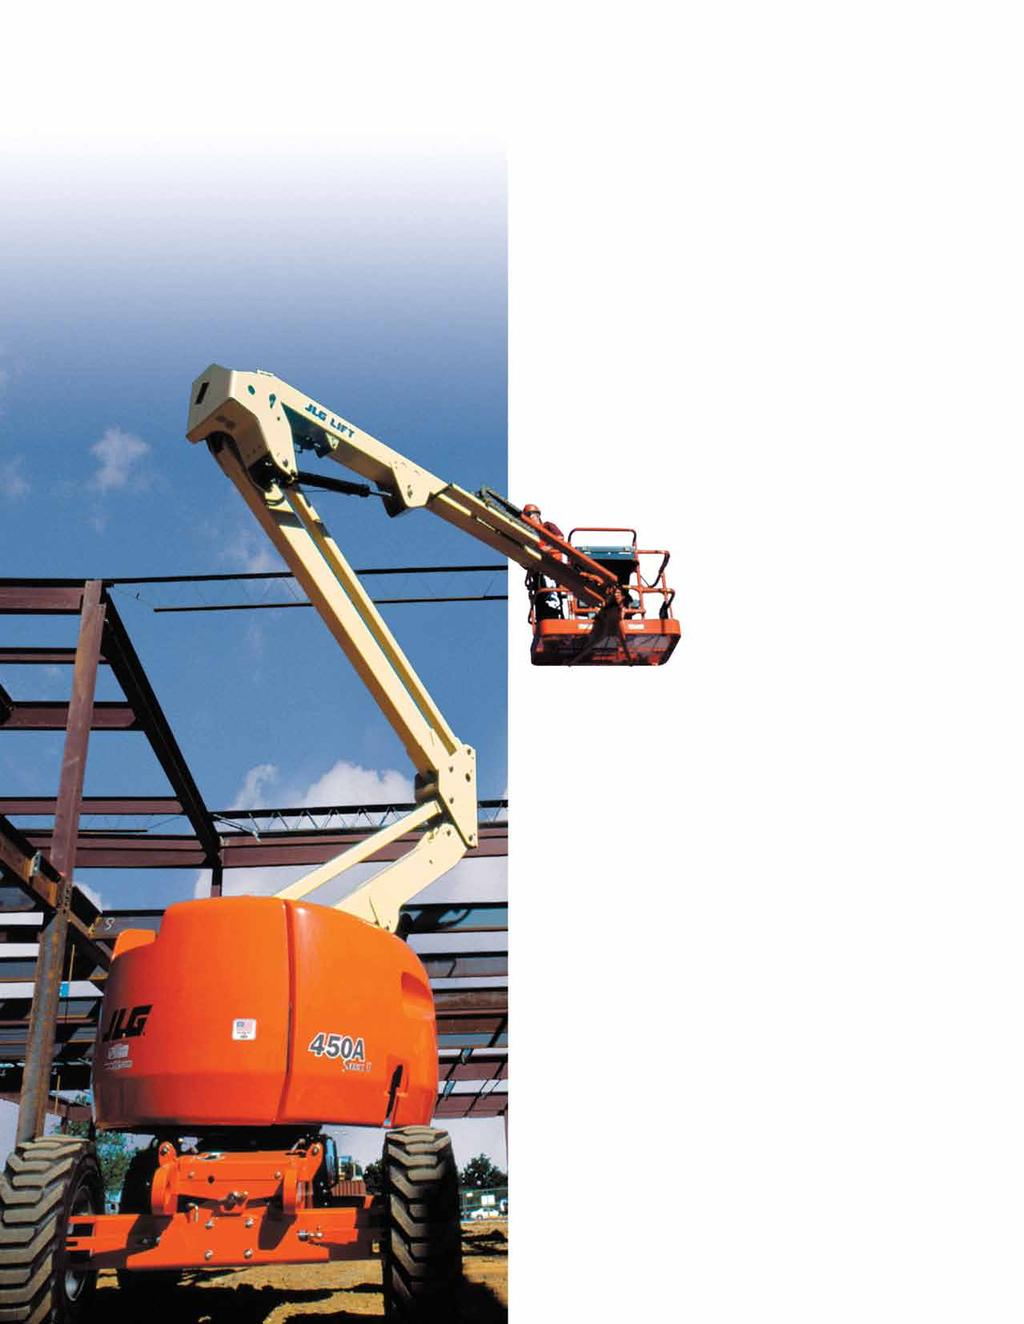 450 Series and Model 340AJ Articulating Boom Lifts Go Farther with a Wider Range of Motion.